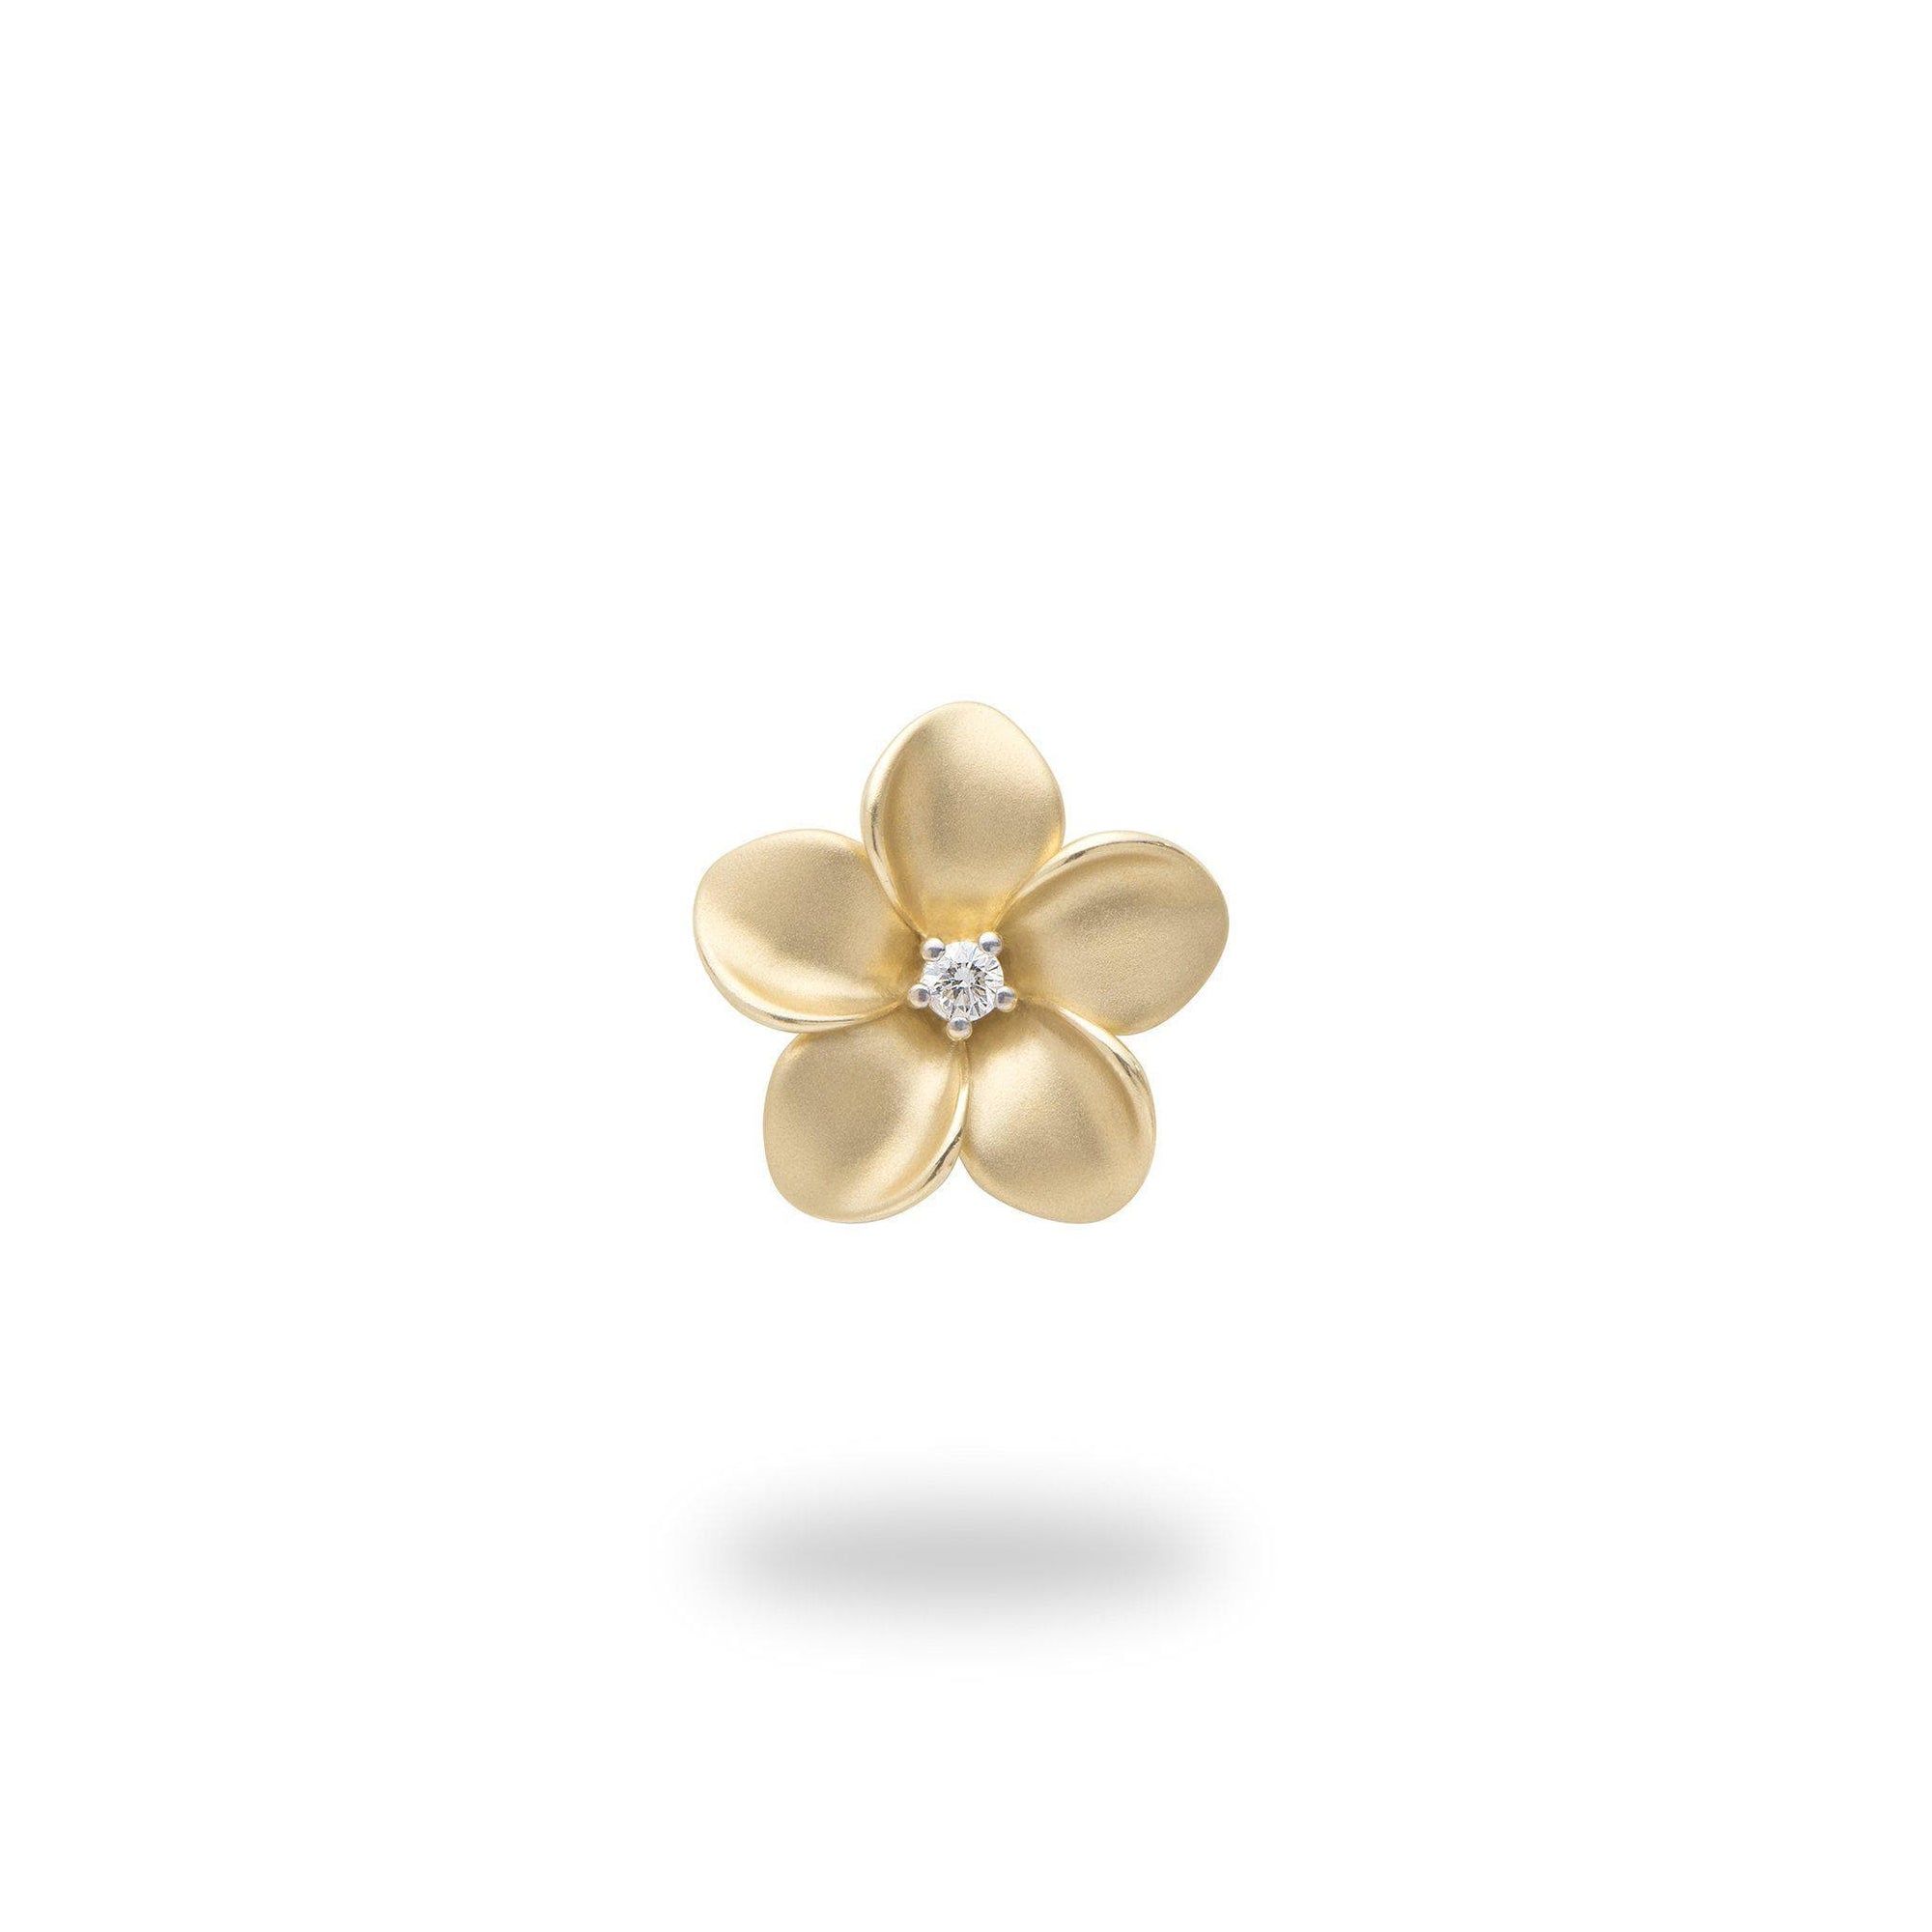 Plumeria Pendant in Gold with Diamond - 13mm-[SKU]